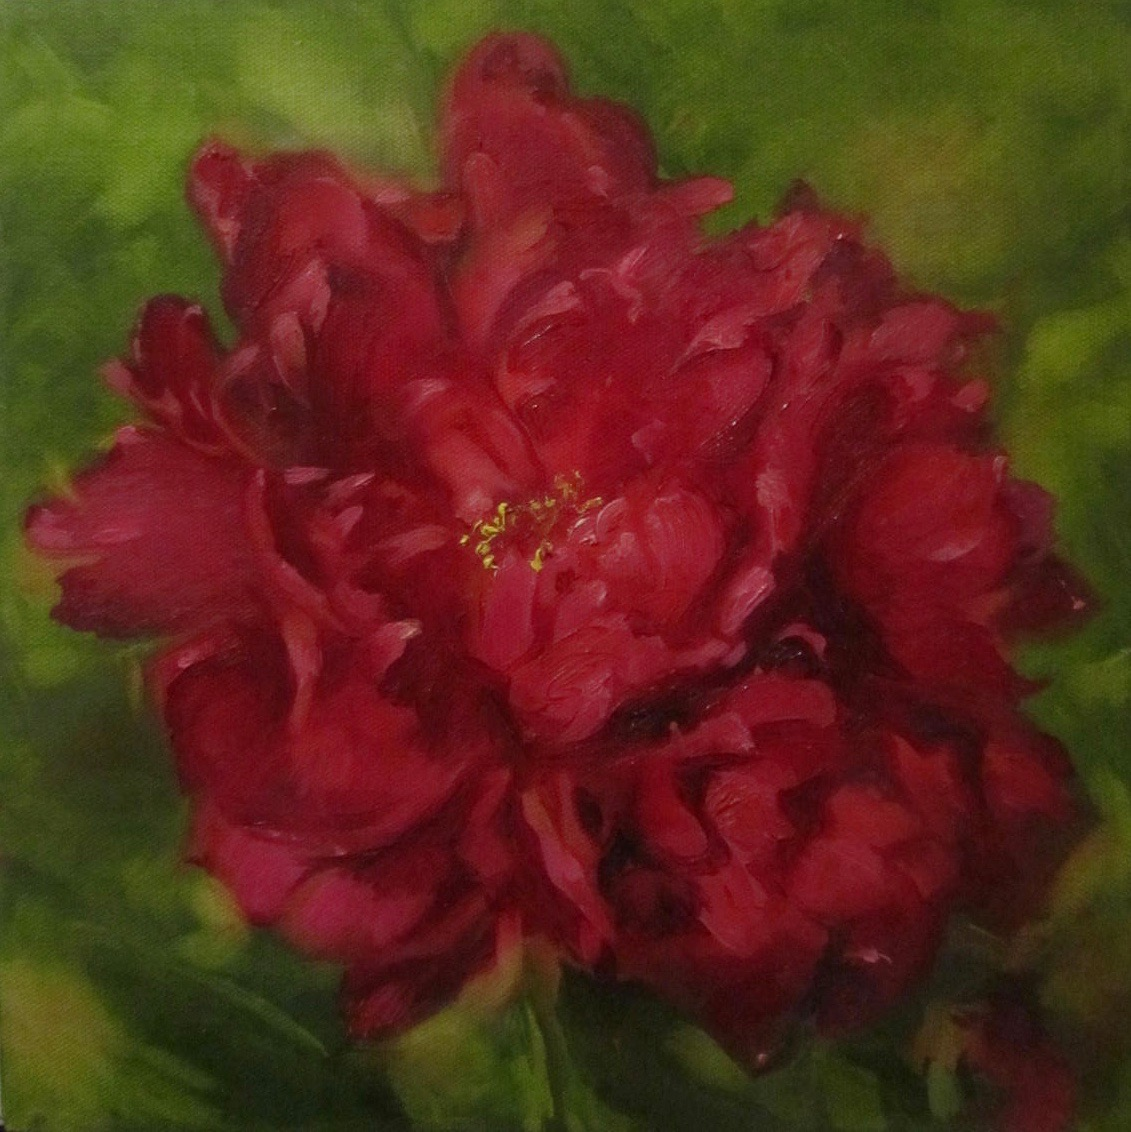 003 'Red Peony' Oil on Canvas